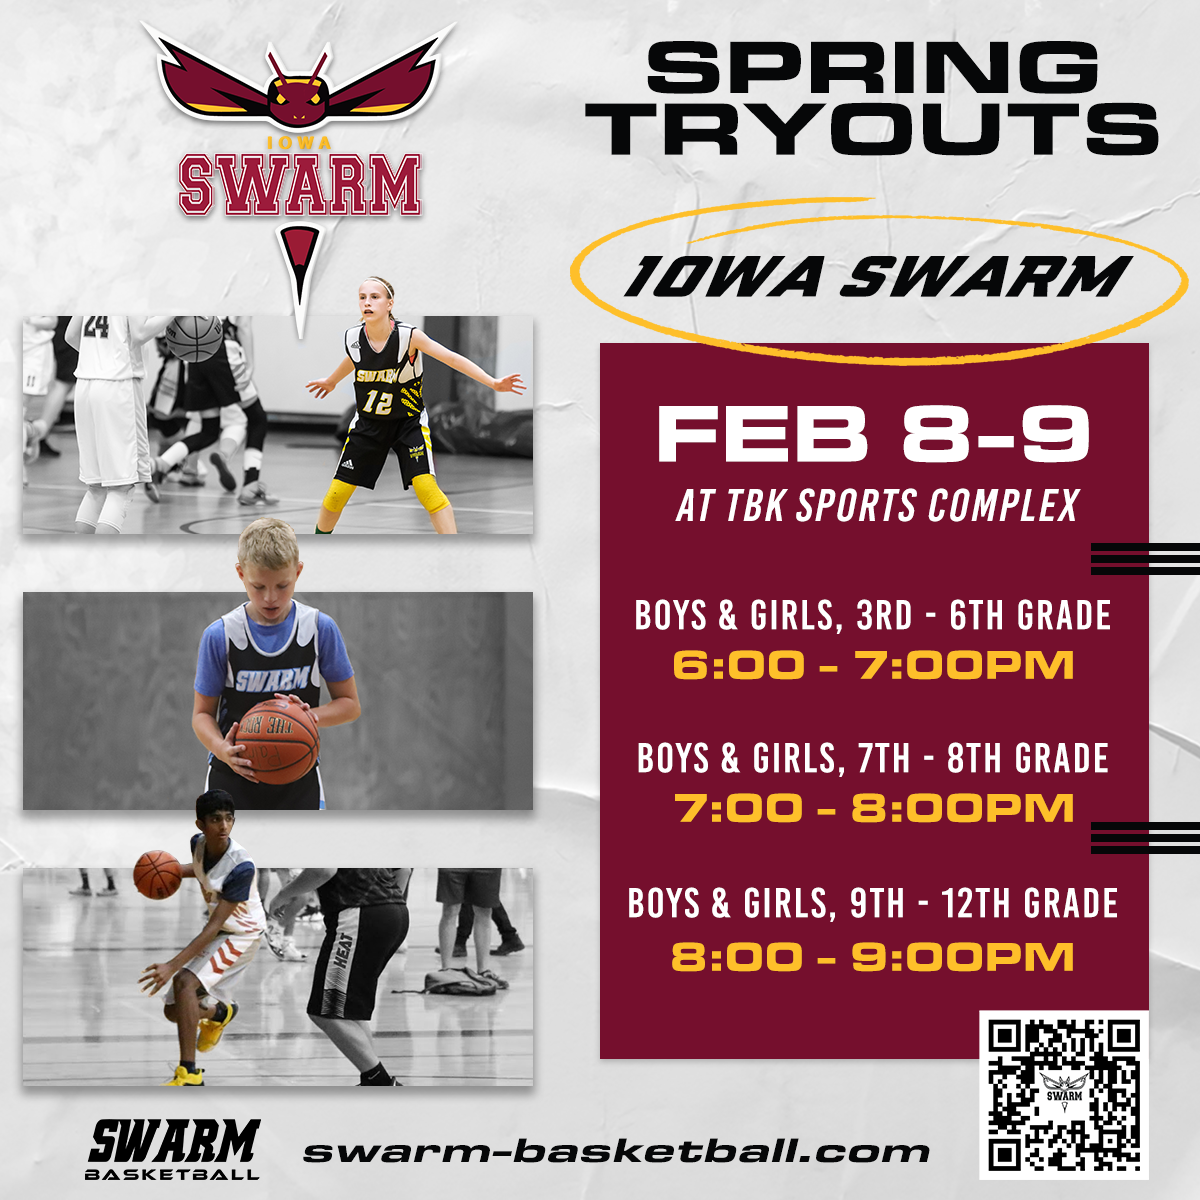 Spring21Tryouts_Iowa (1)